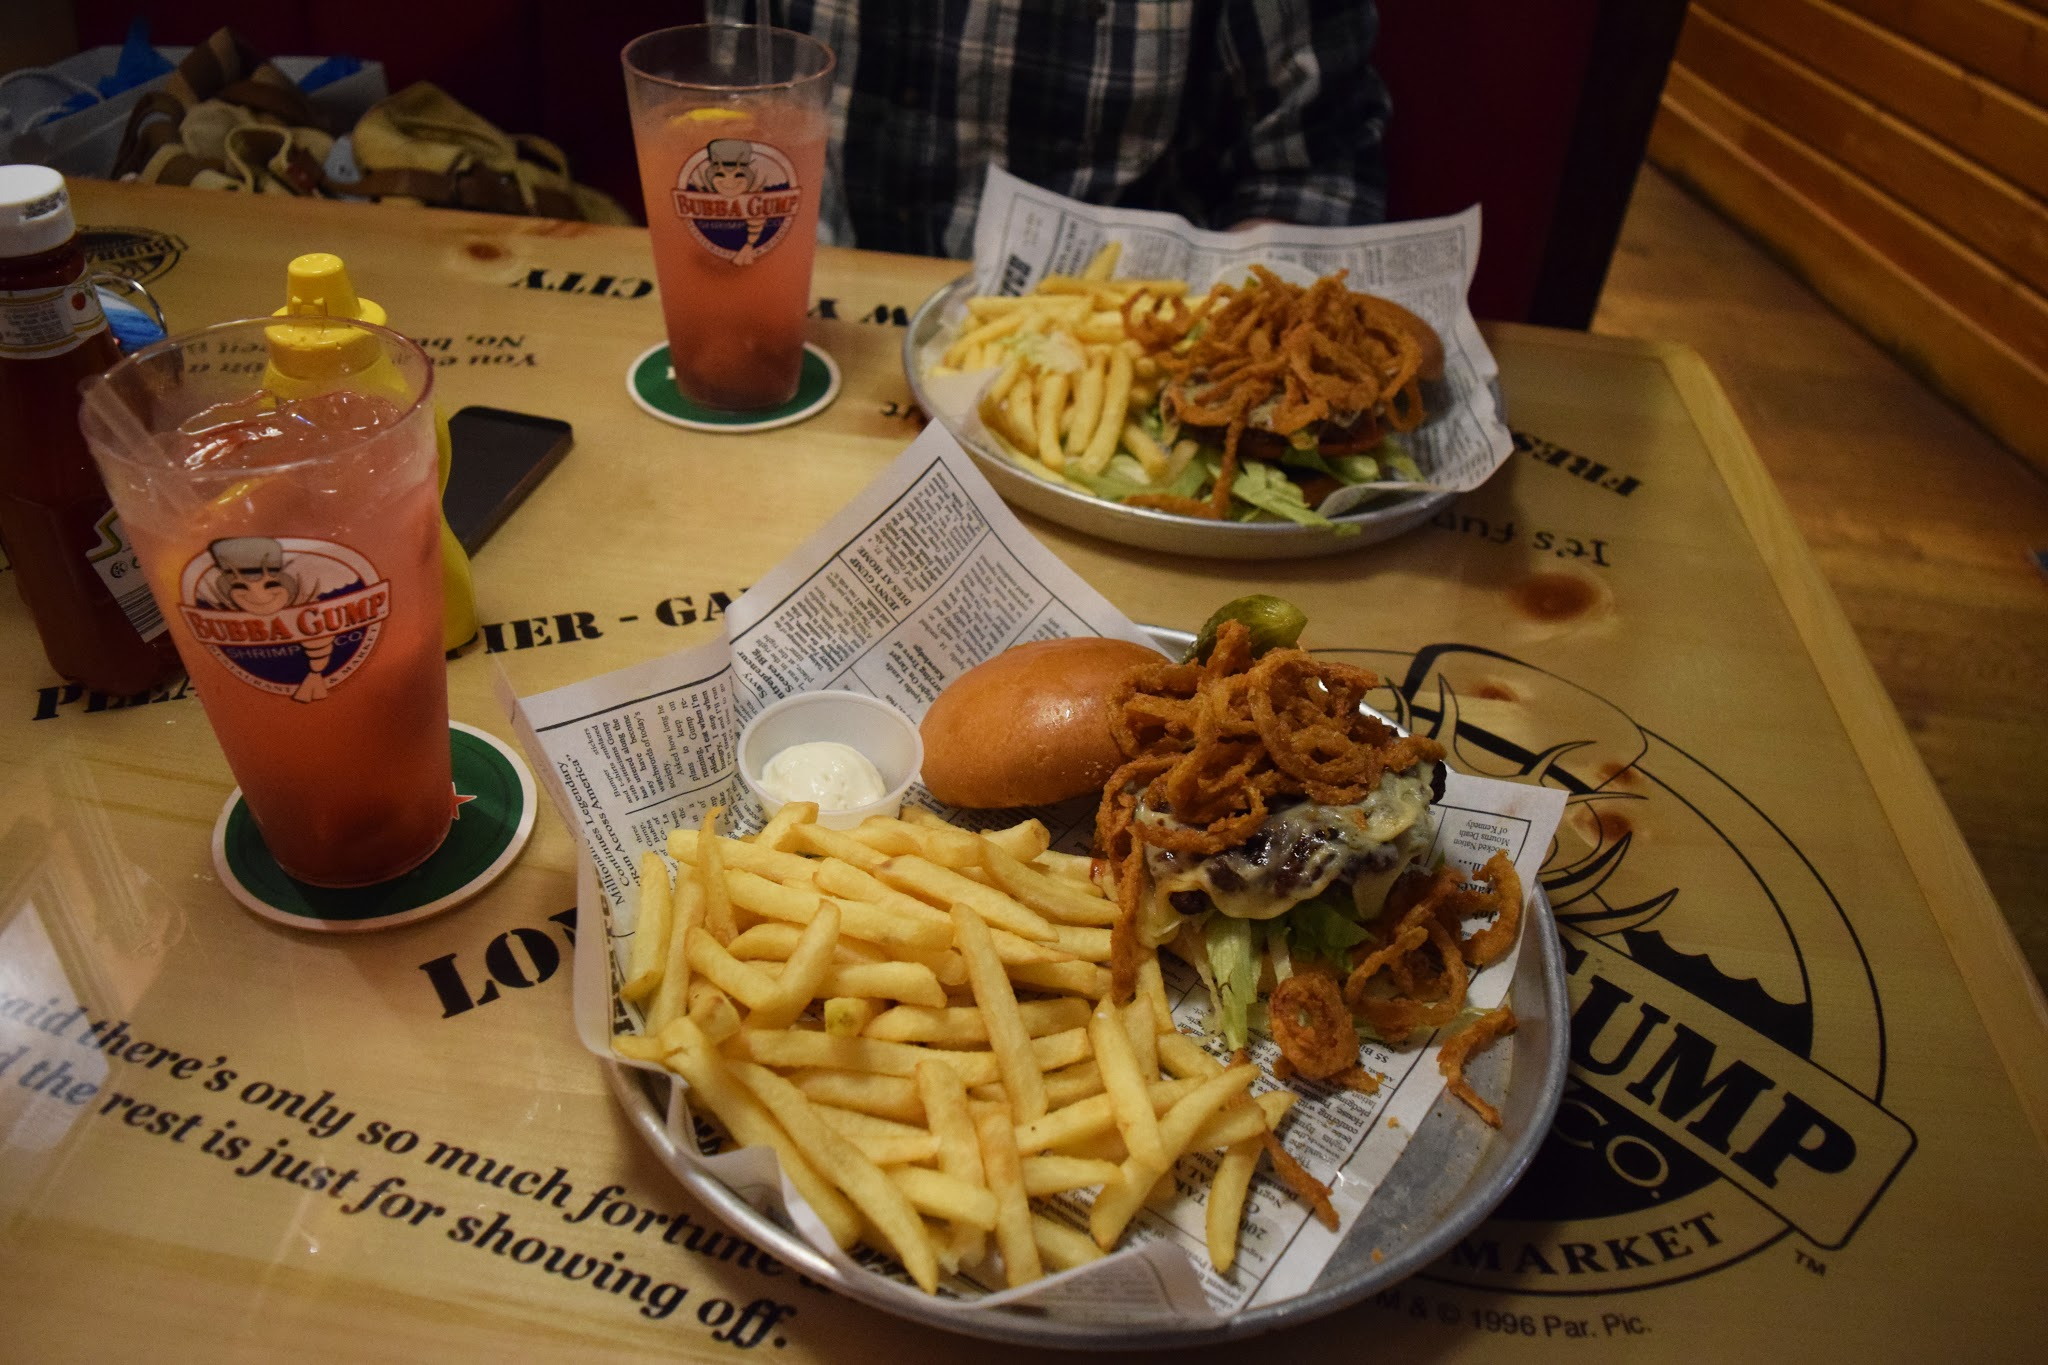 Our meals and drinks at Bubba Gump Shrimp co